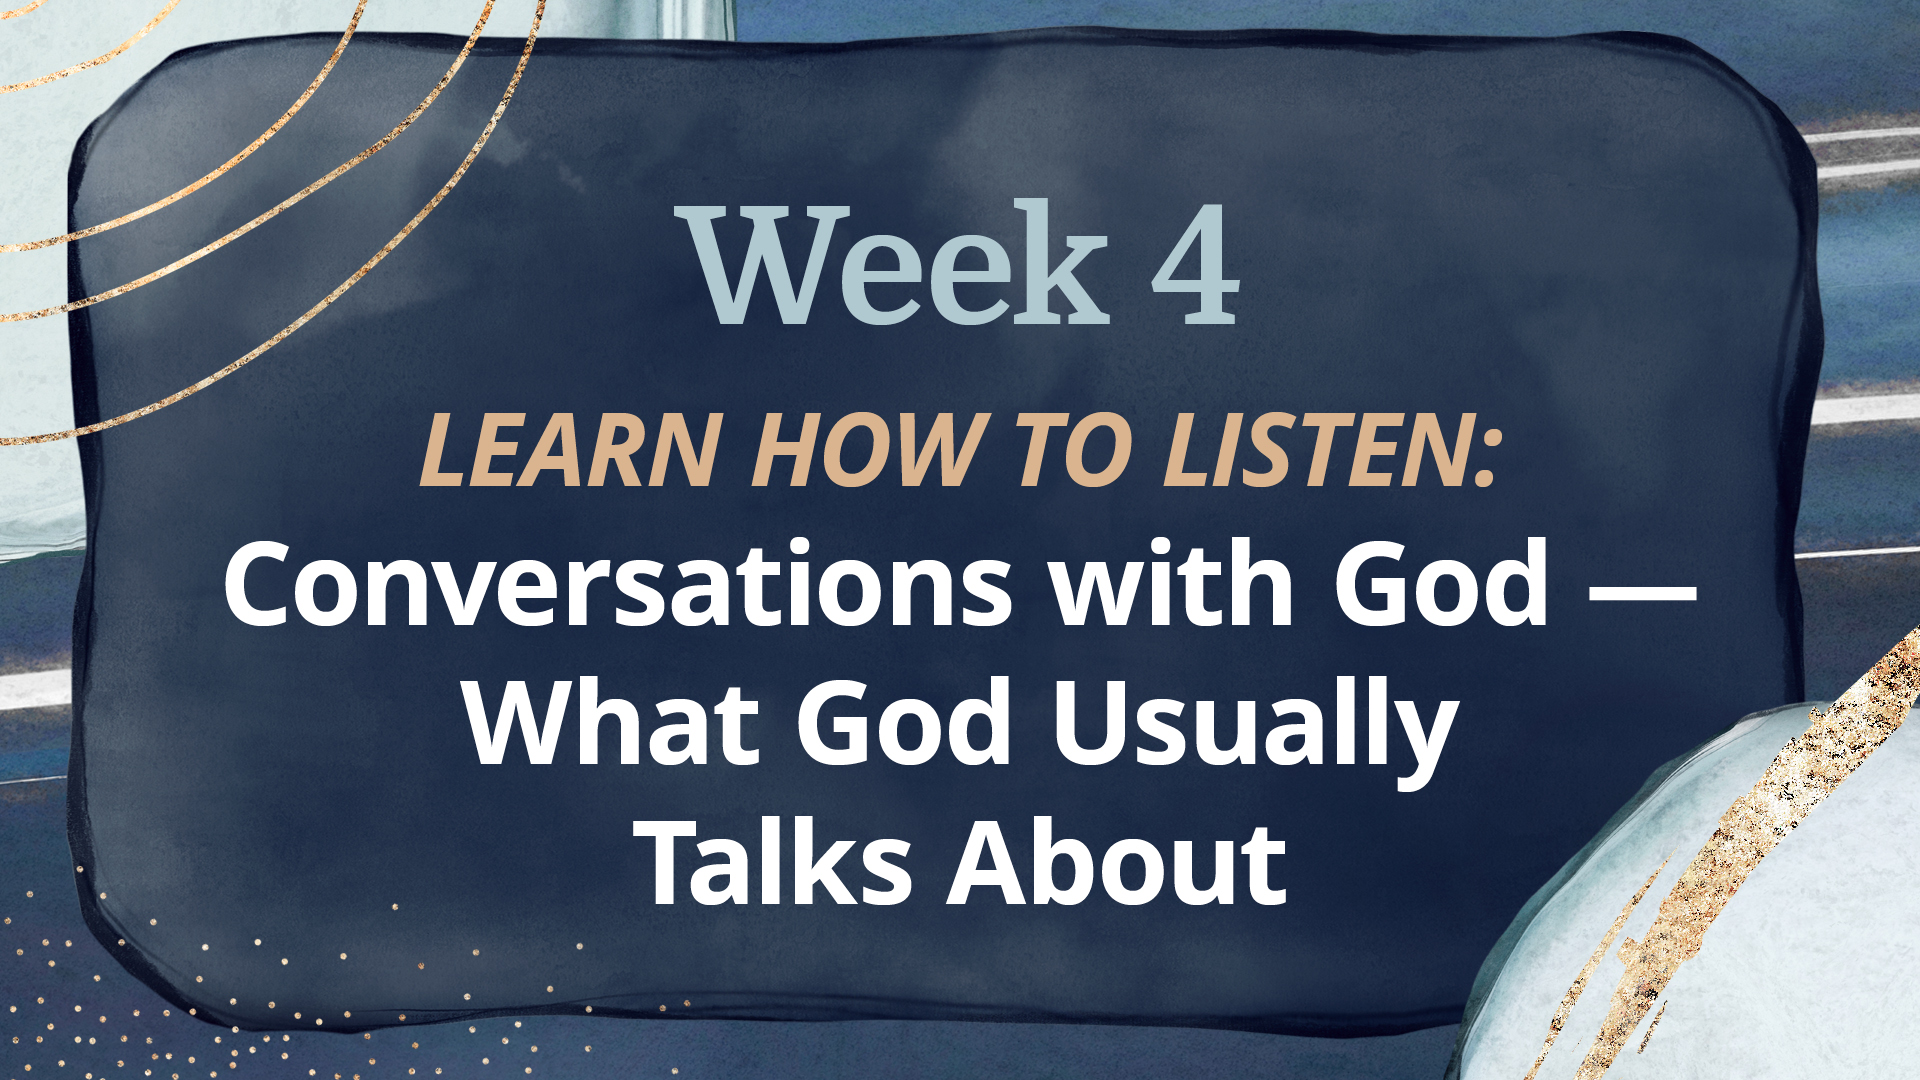 WEEK 4: Conversations with God — What God Usually Talks About